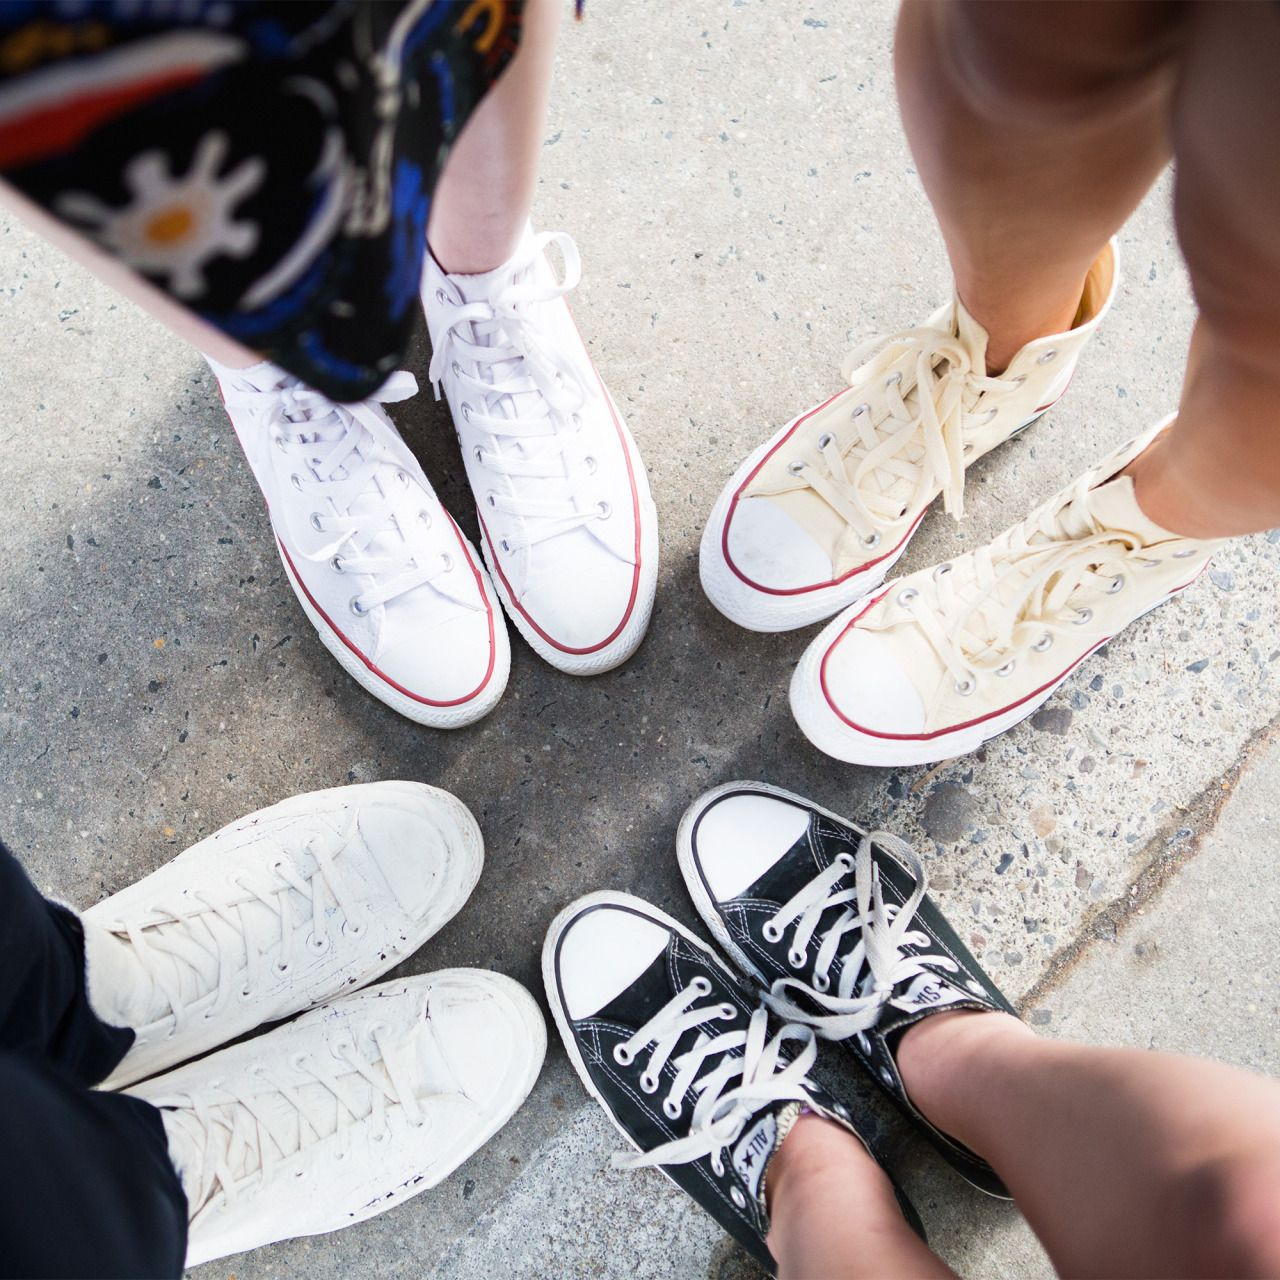 The takeaway here: InStyle staffers love their Converses